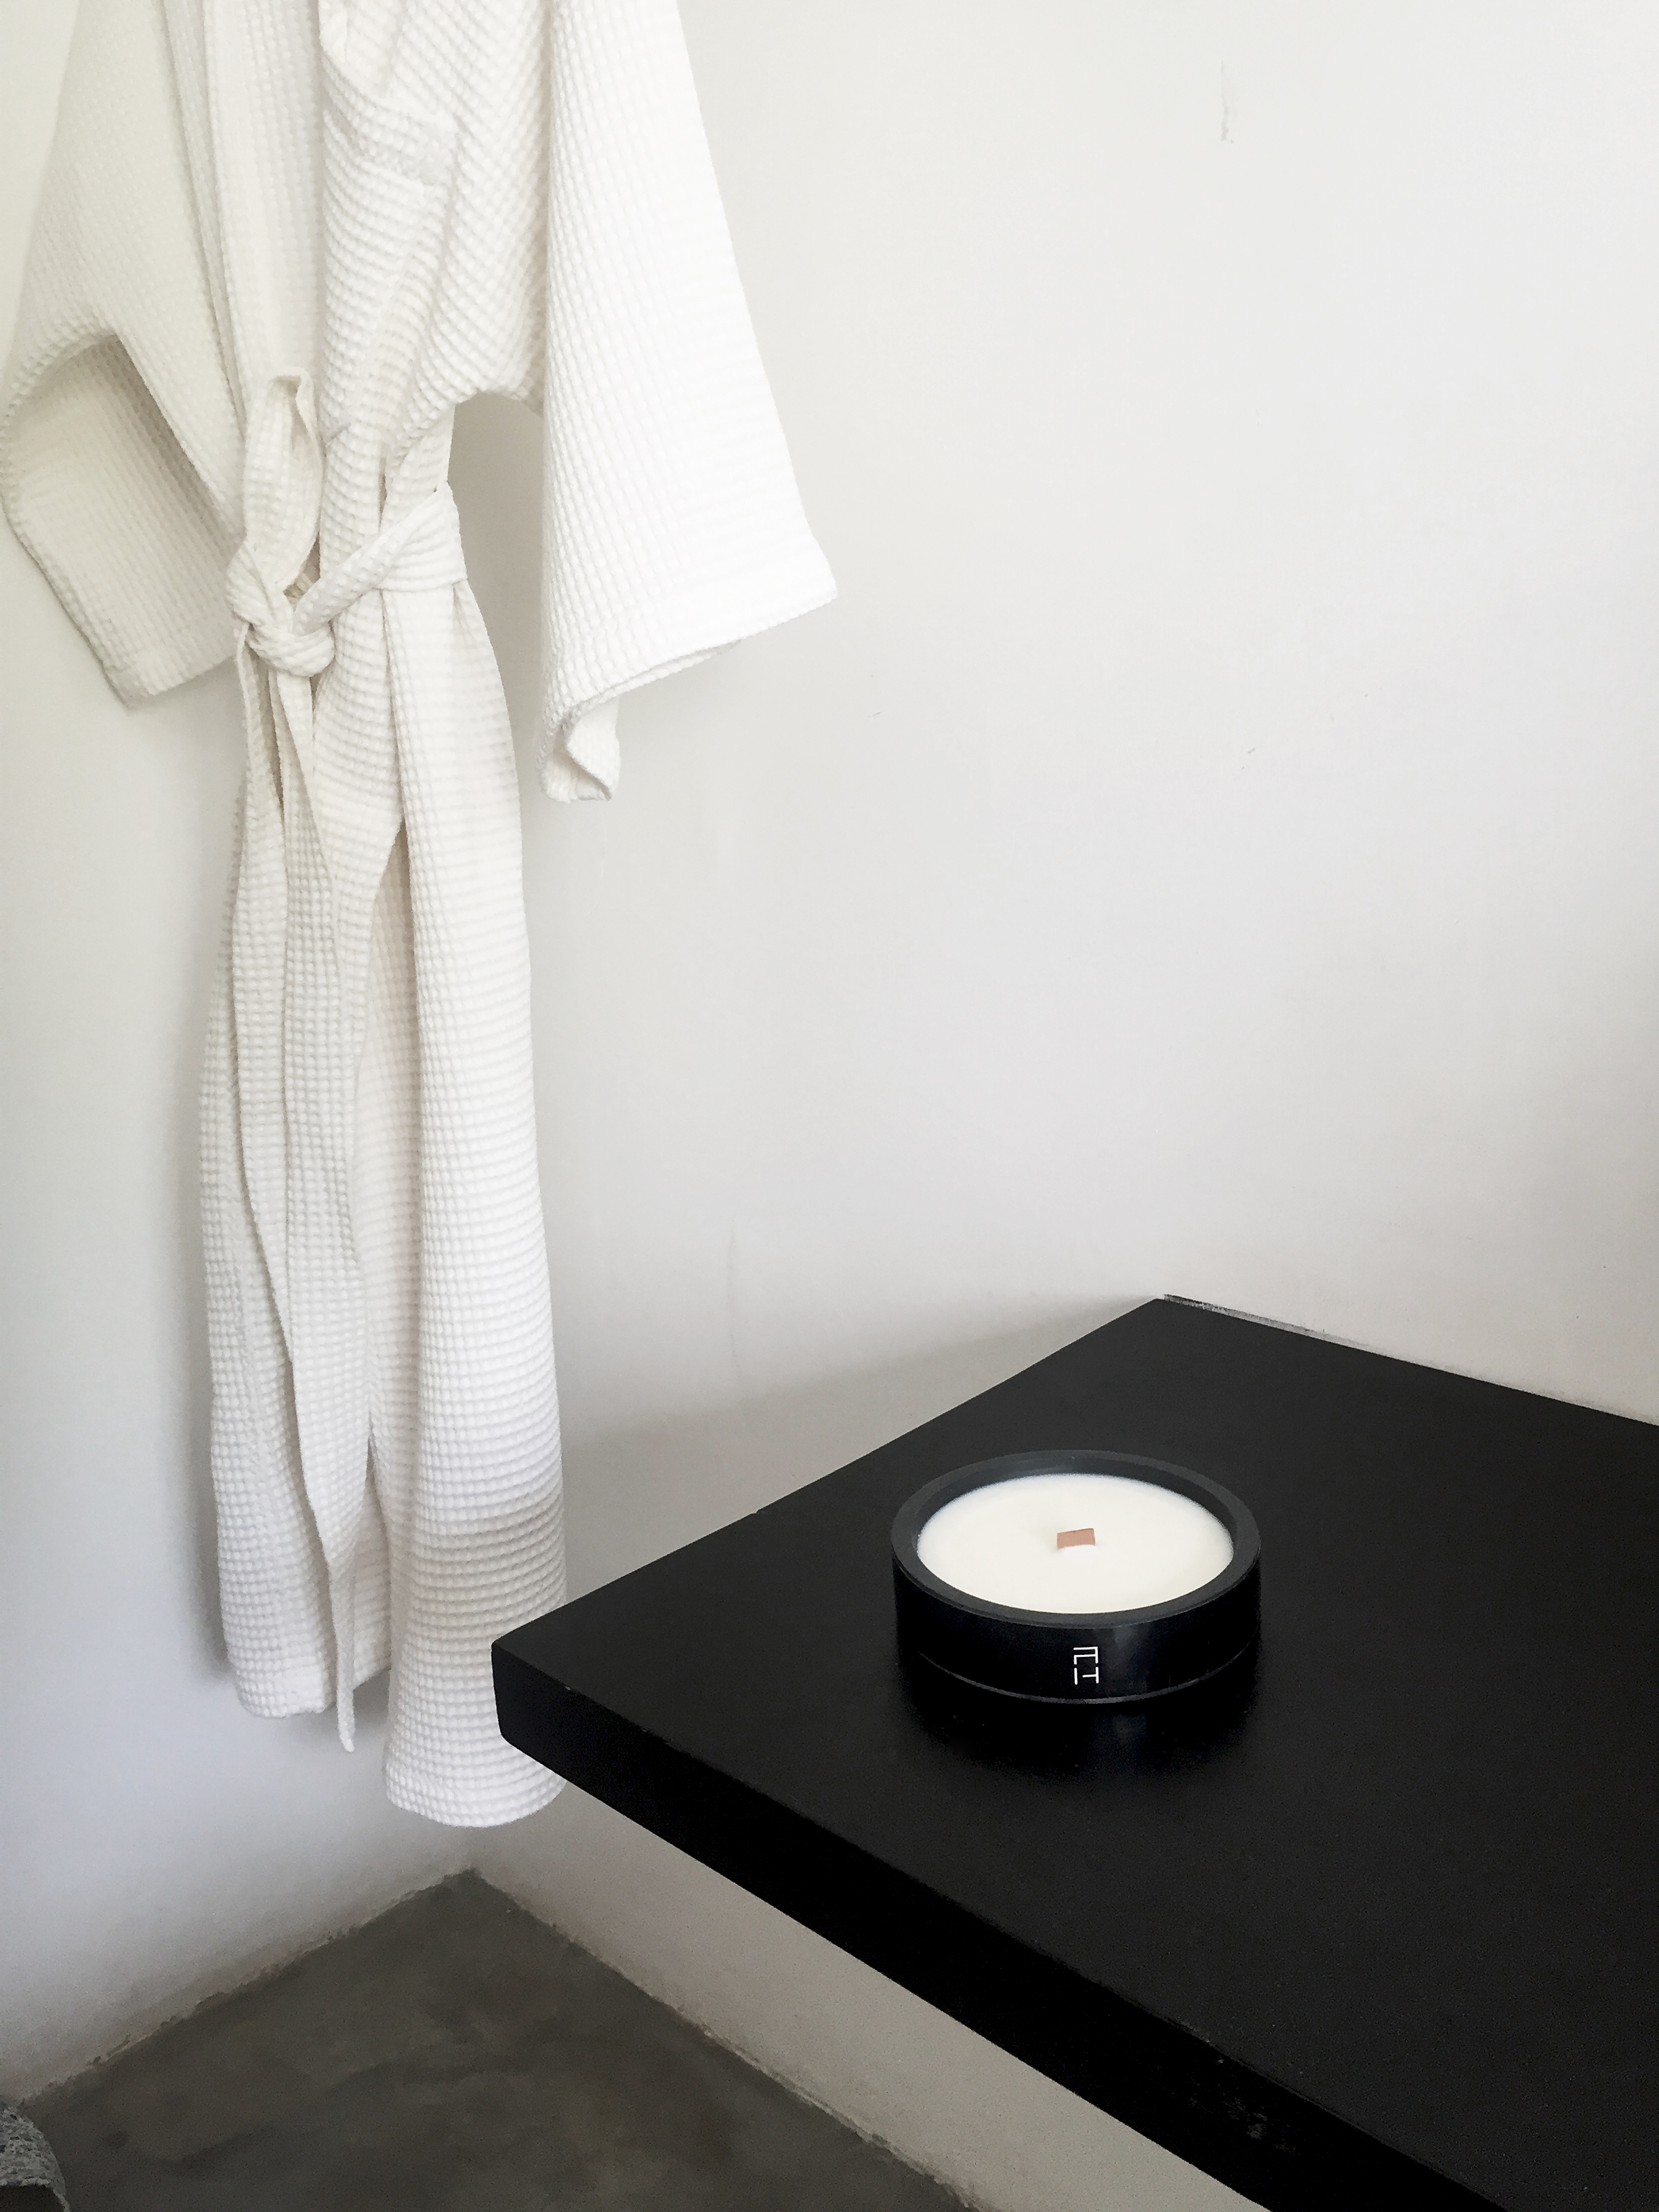 PATHBLACK-aromatherapy-luxury-soycandles-handpoured-allnatural-toxinfree-woodenwick-scented-candles-interior-design-blackcandles-minimal-spa-wellness-meditation-yoga.jpg